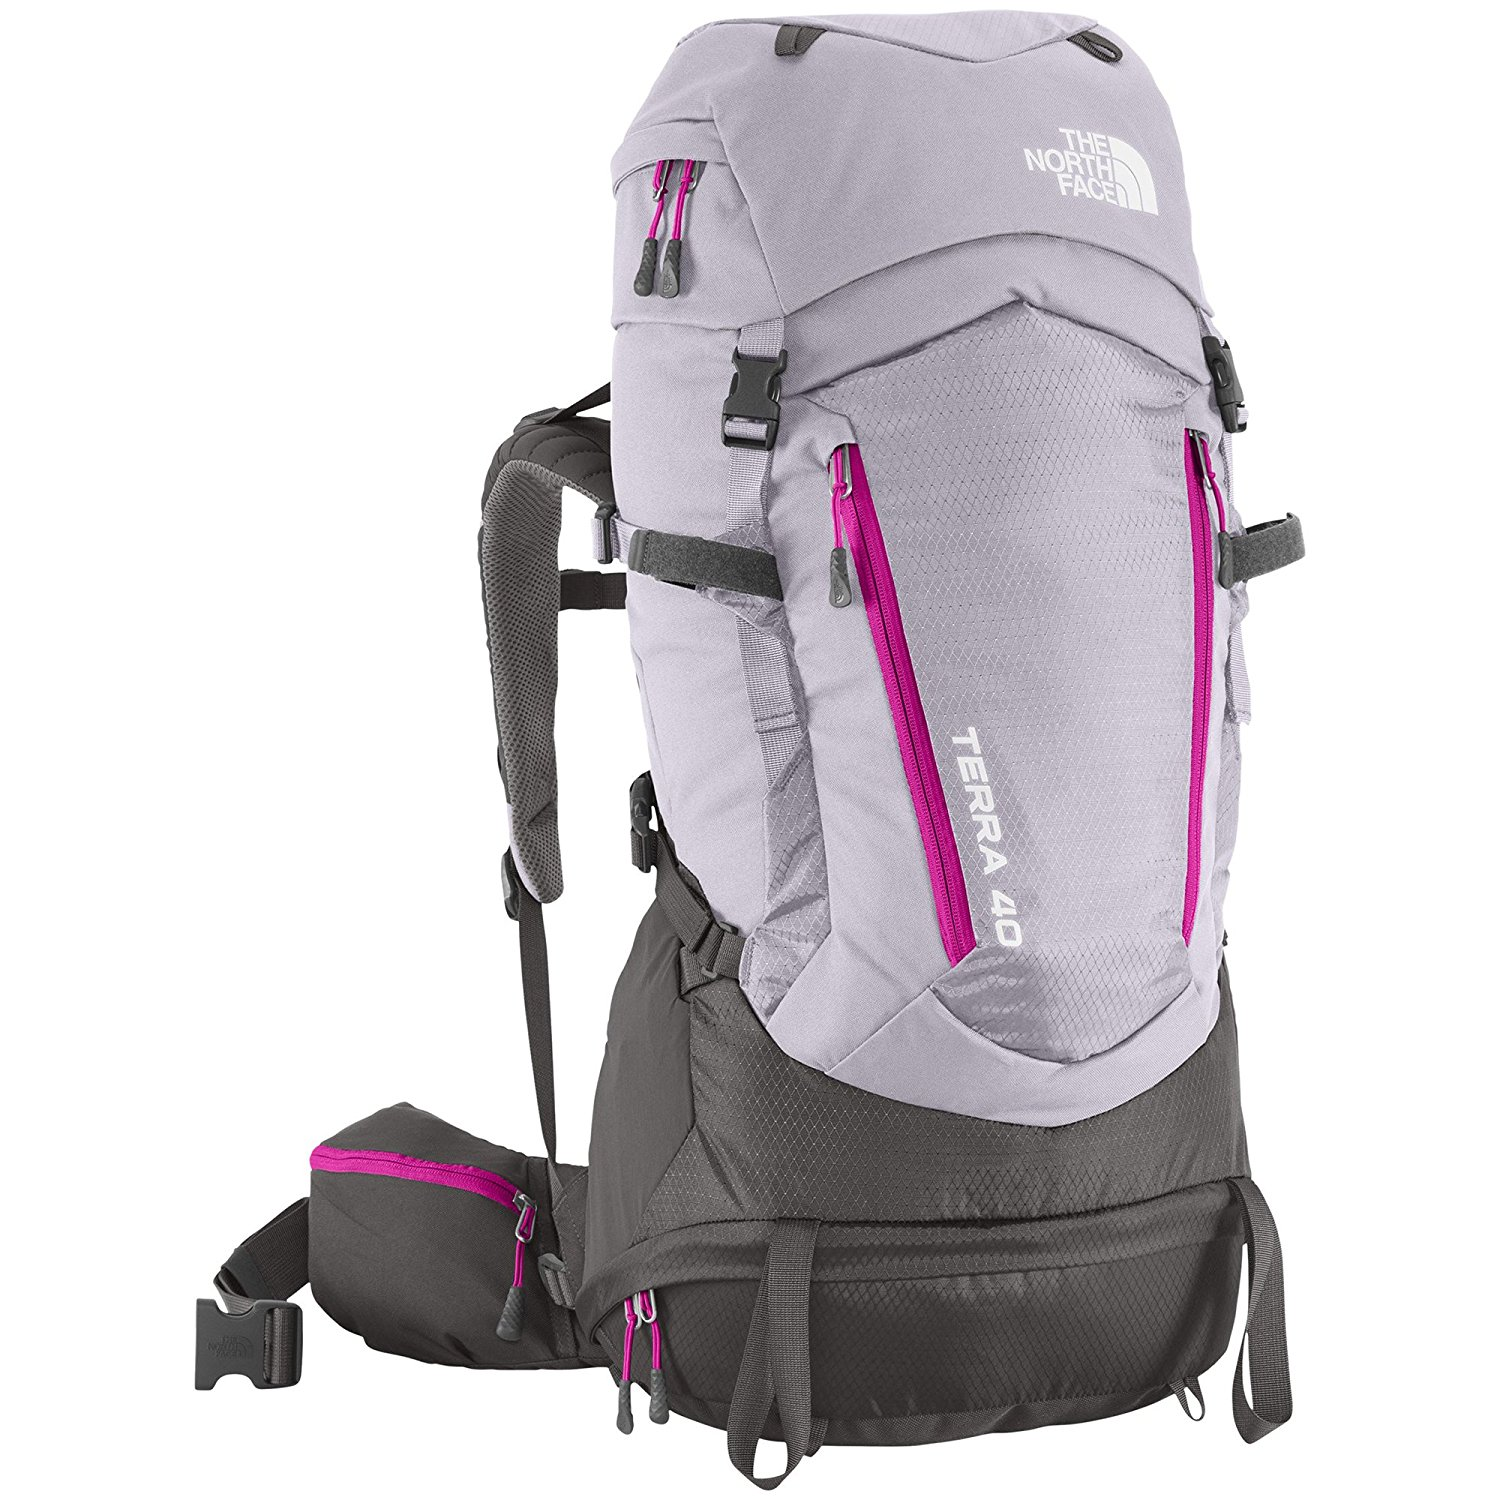 712322c2 Get Quotations · The North Face Terra 40 Hiking Backpack Womens (Dapple  Grey/Fuchsia Pink, XS